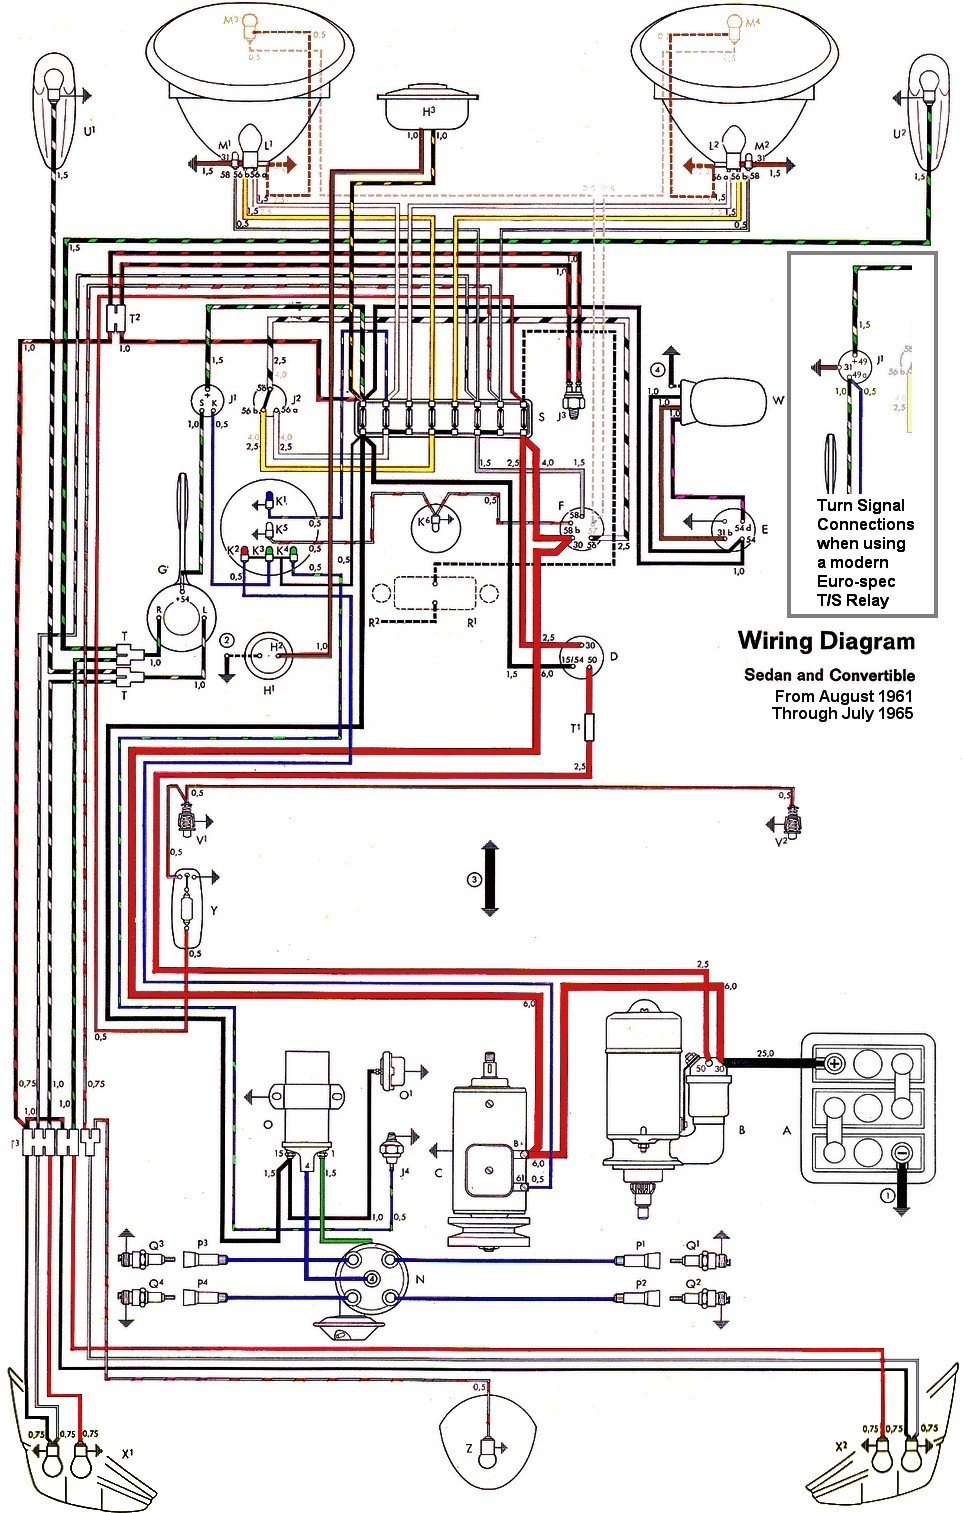 bug_62 65withinset wiring diagram vw beetle sedan and convertible 1961 1965 vw 1968 vw bug headlight wiring diagram at soozxer.org